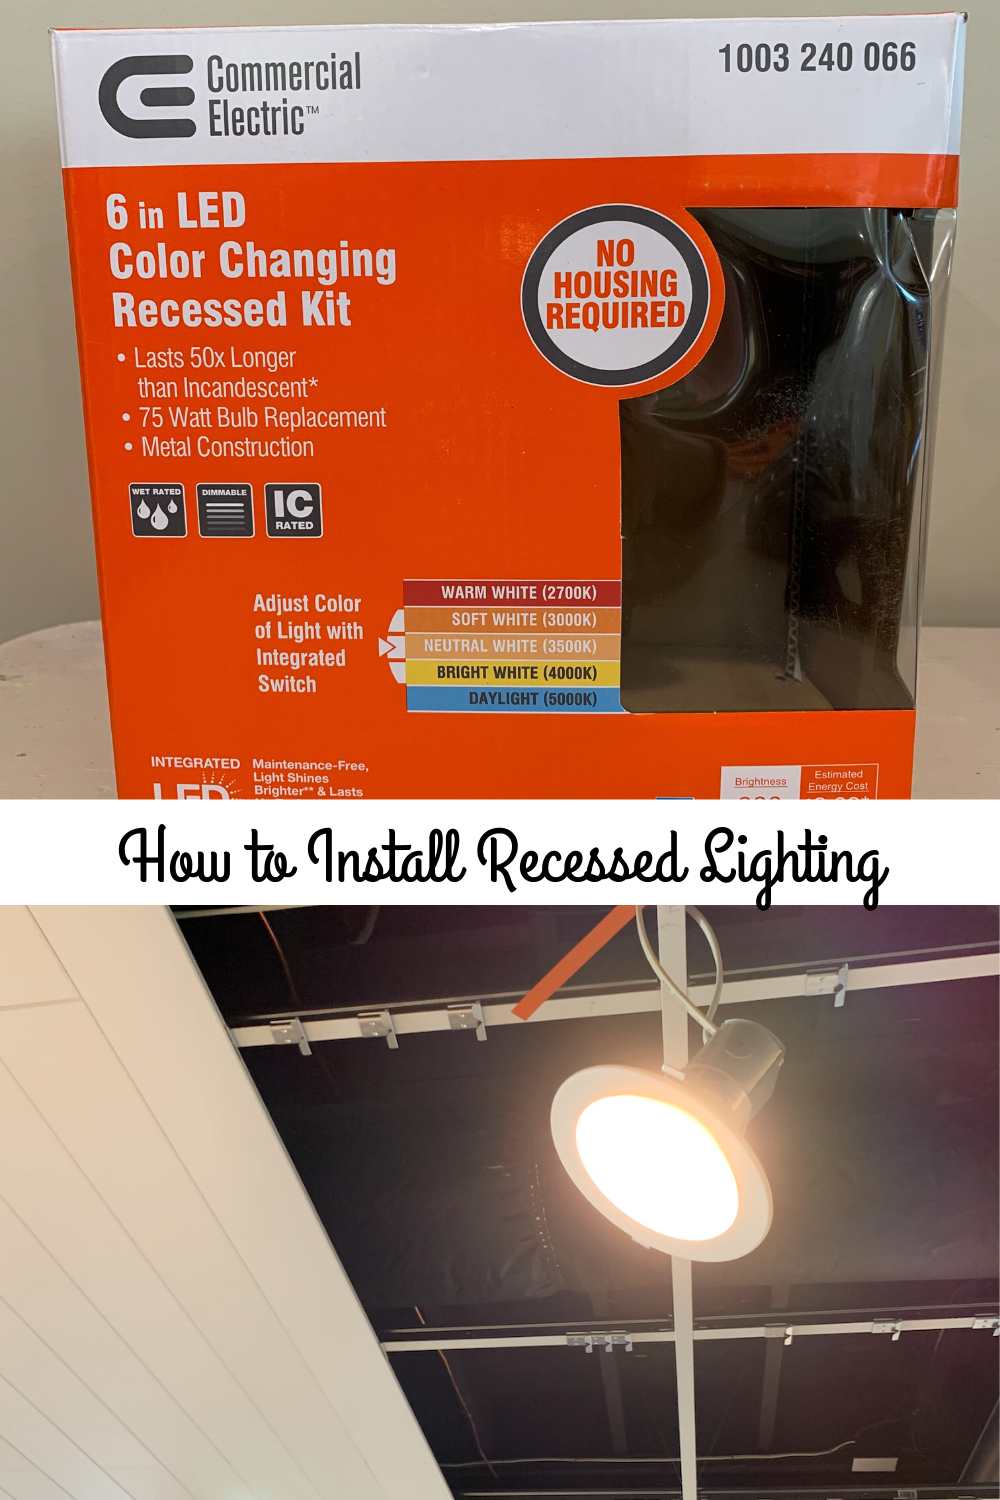 How To Install Led Recessed Lighting Canned Lights Led Recessed Lighting Recessed Lighting